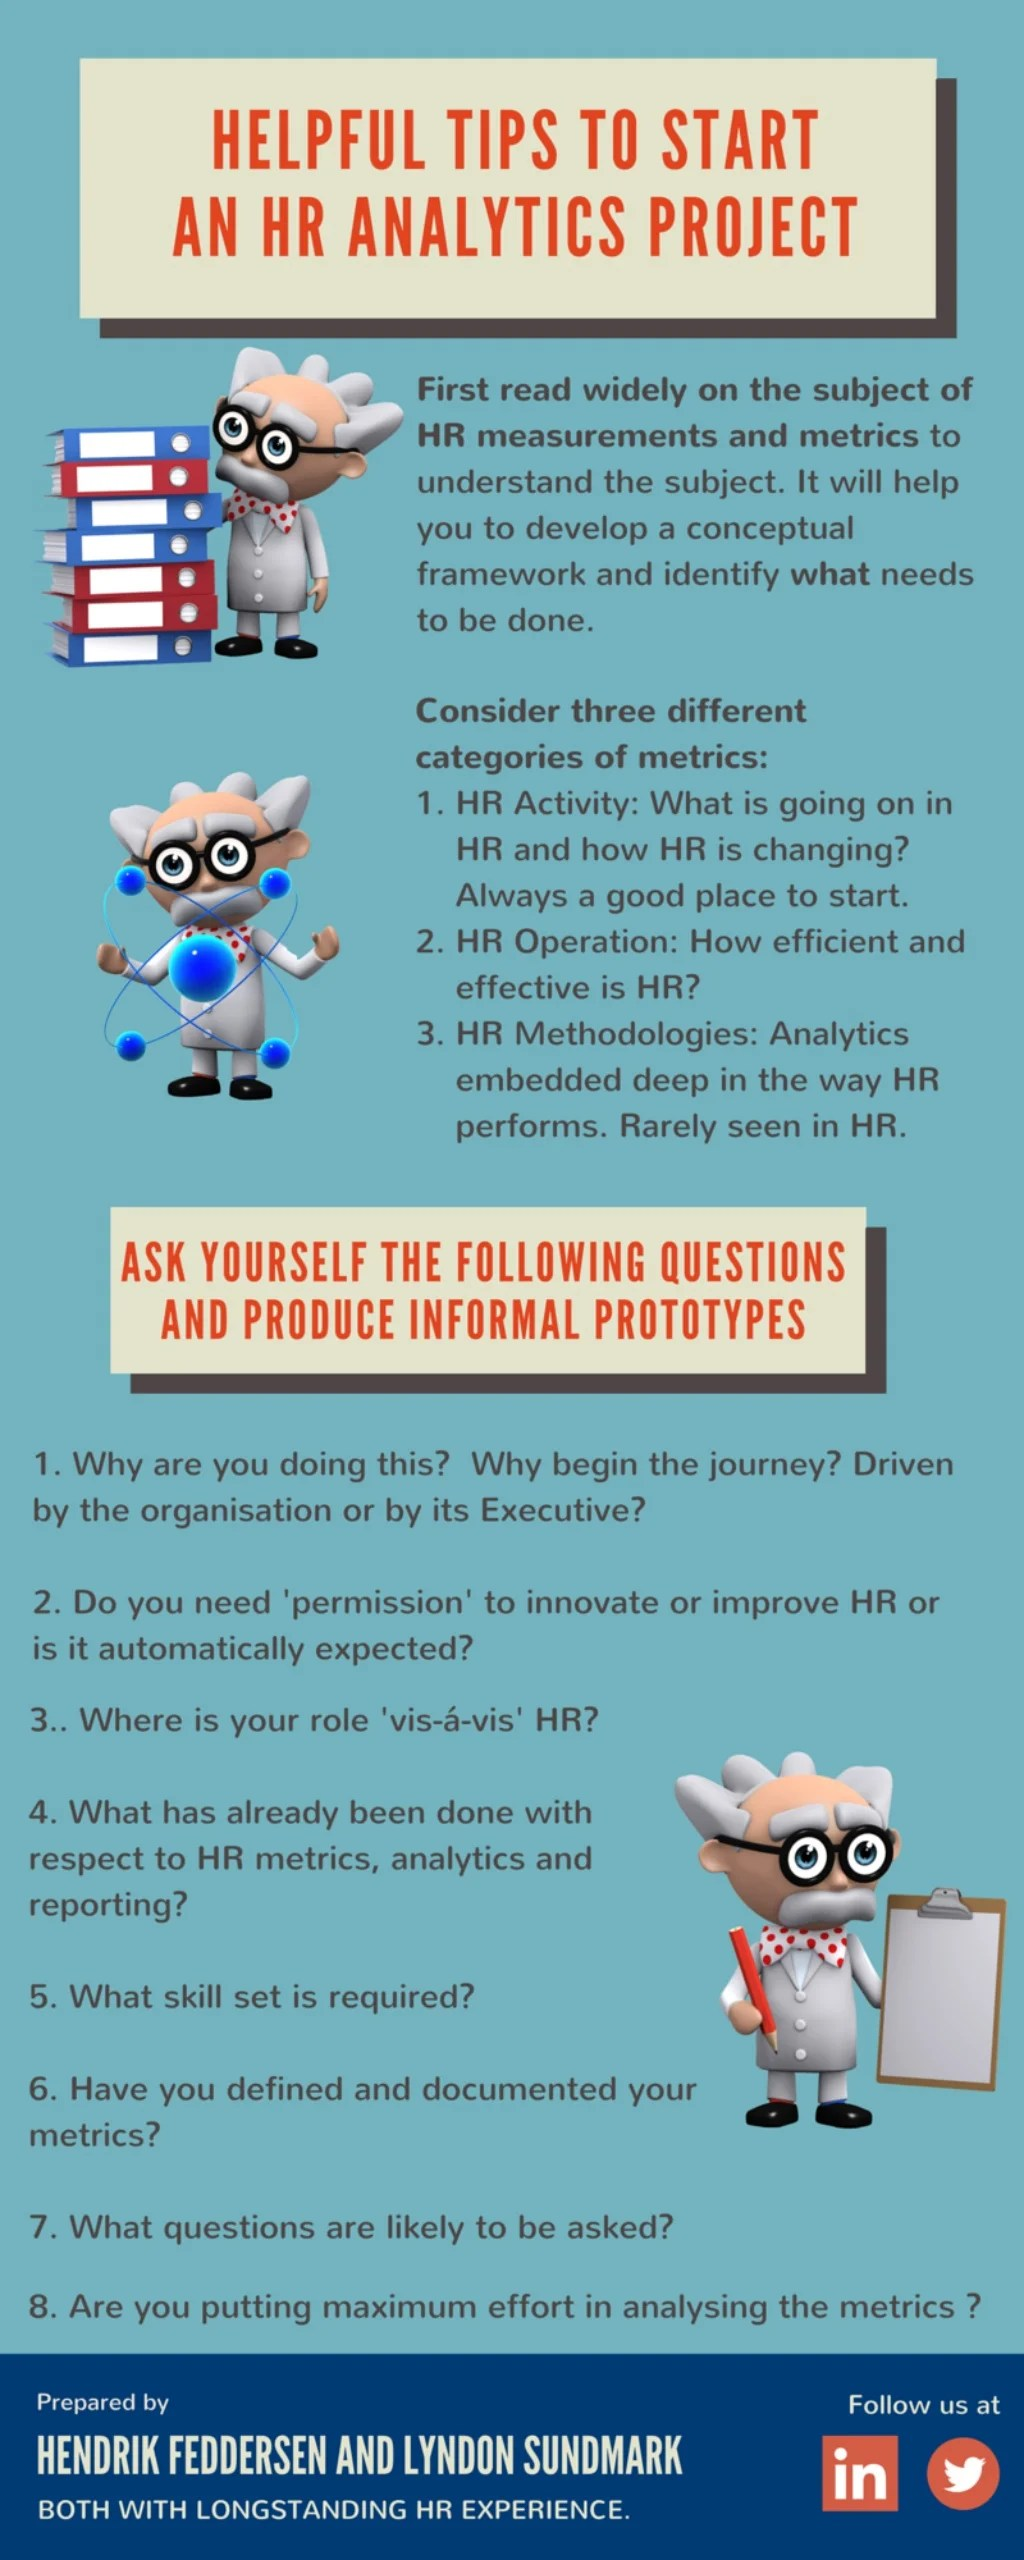 Helpful tips on how to start an HR Analytics project - HR Analytics live